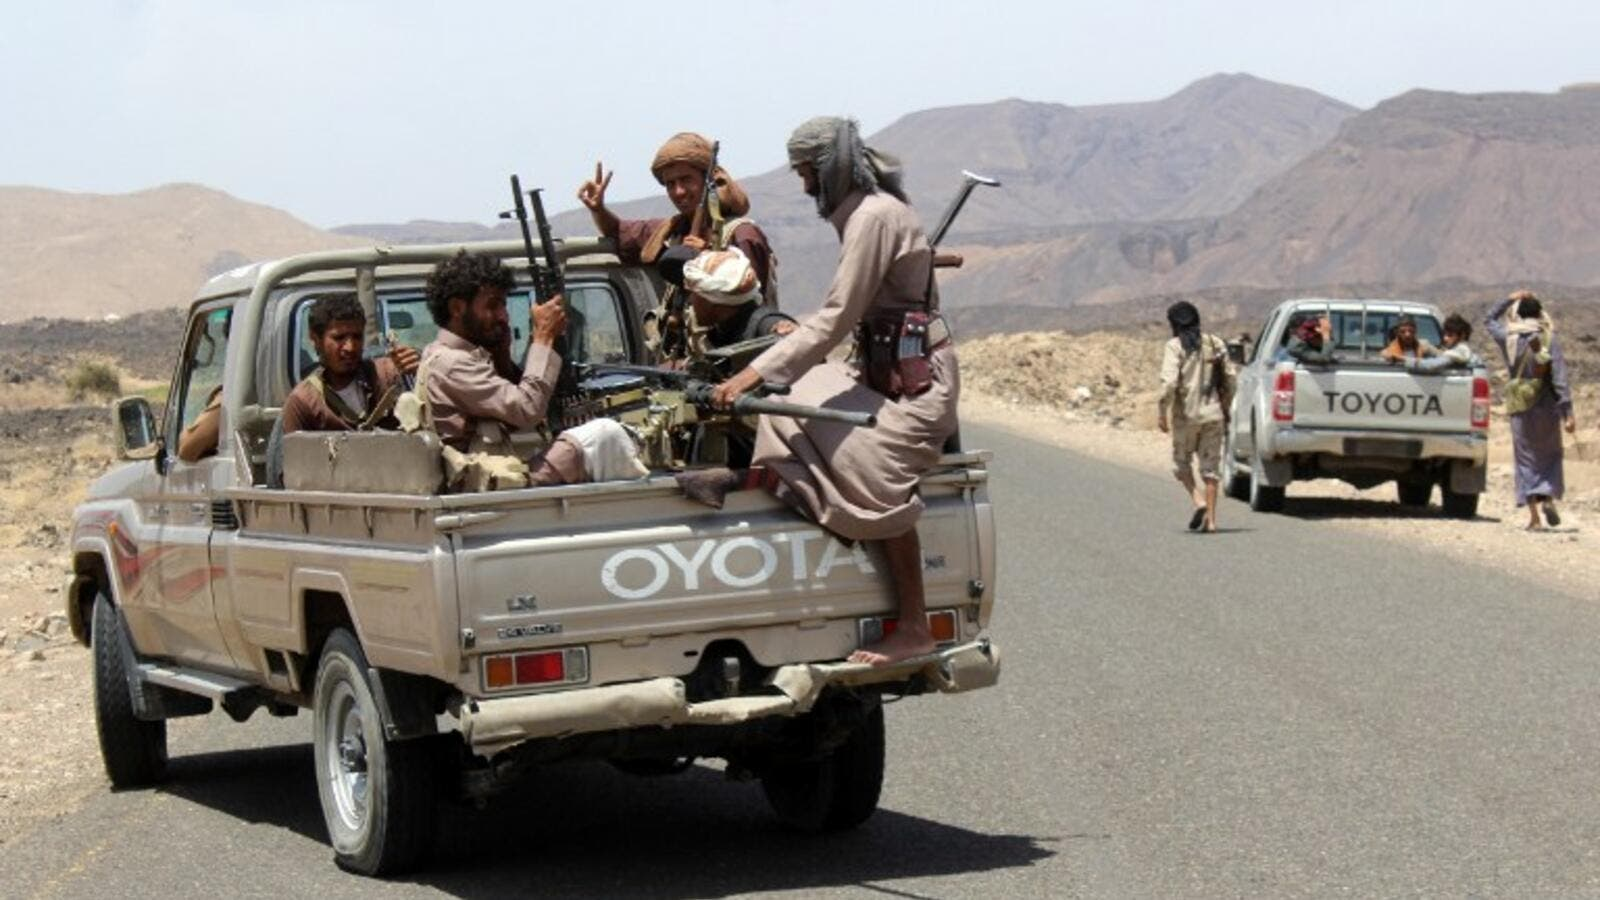 Yemeni fighters loyal to exiled President Abed Rabbo Mansour Hadi wait in their pick-up trucks on a road in the Sirwah area, in Marib province on April 9, 2016. (AFP/Nabil Hassan)